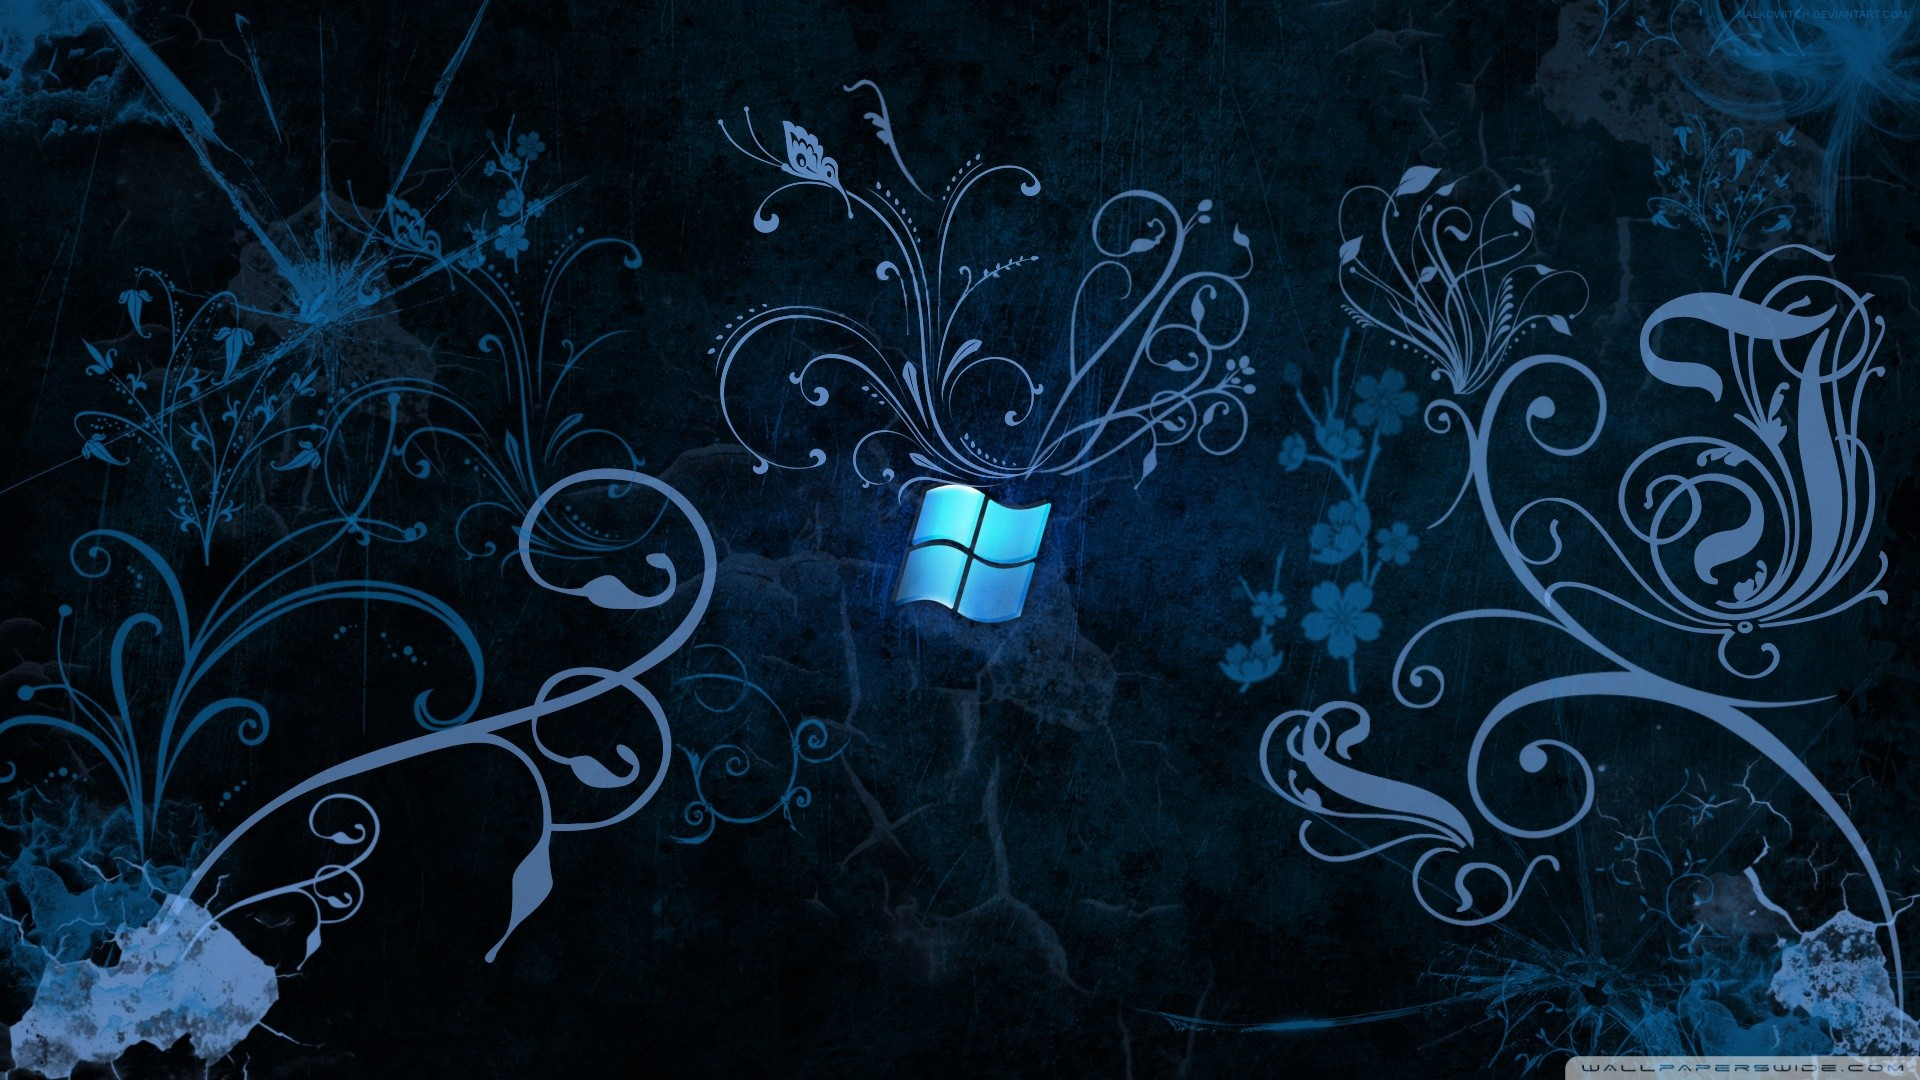 windows 81 live wallpaper (56+ images)